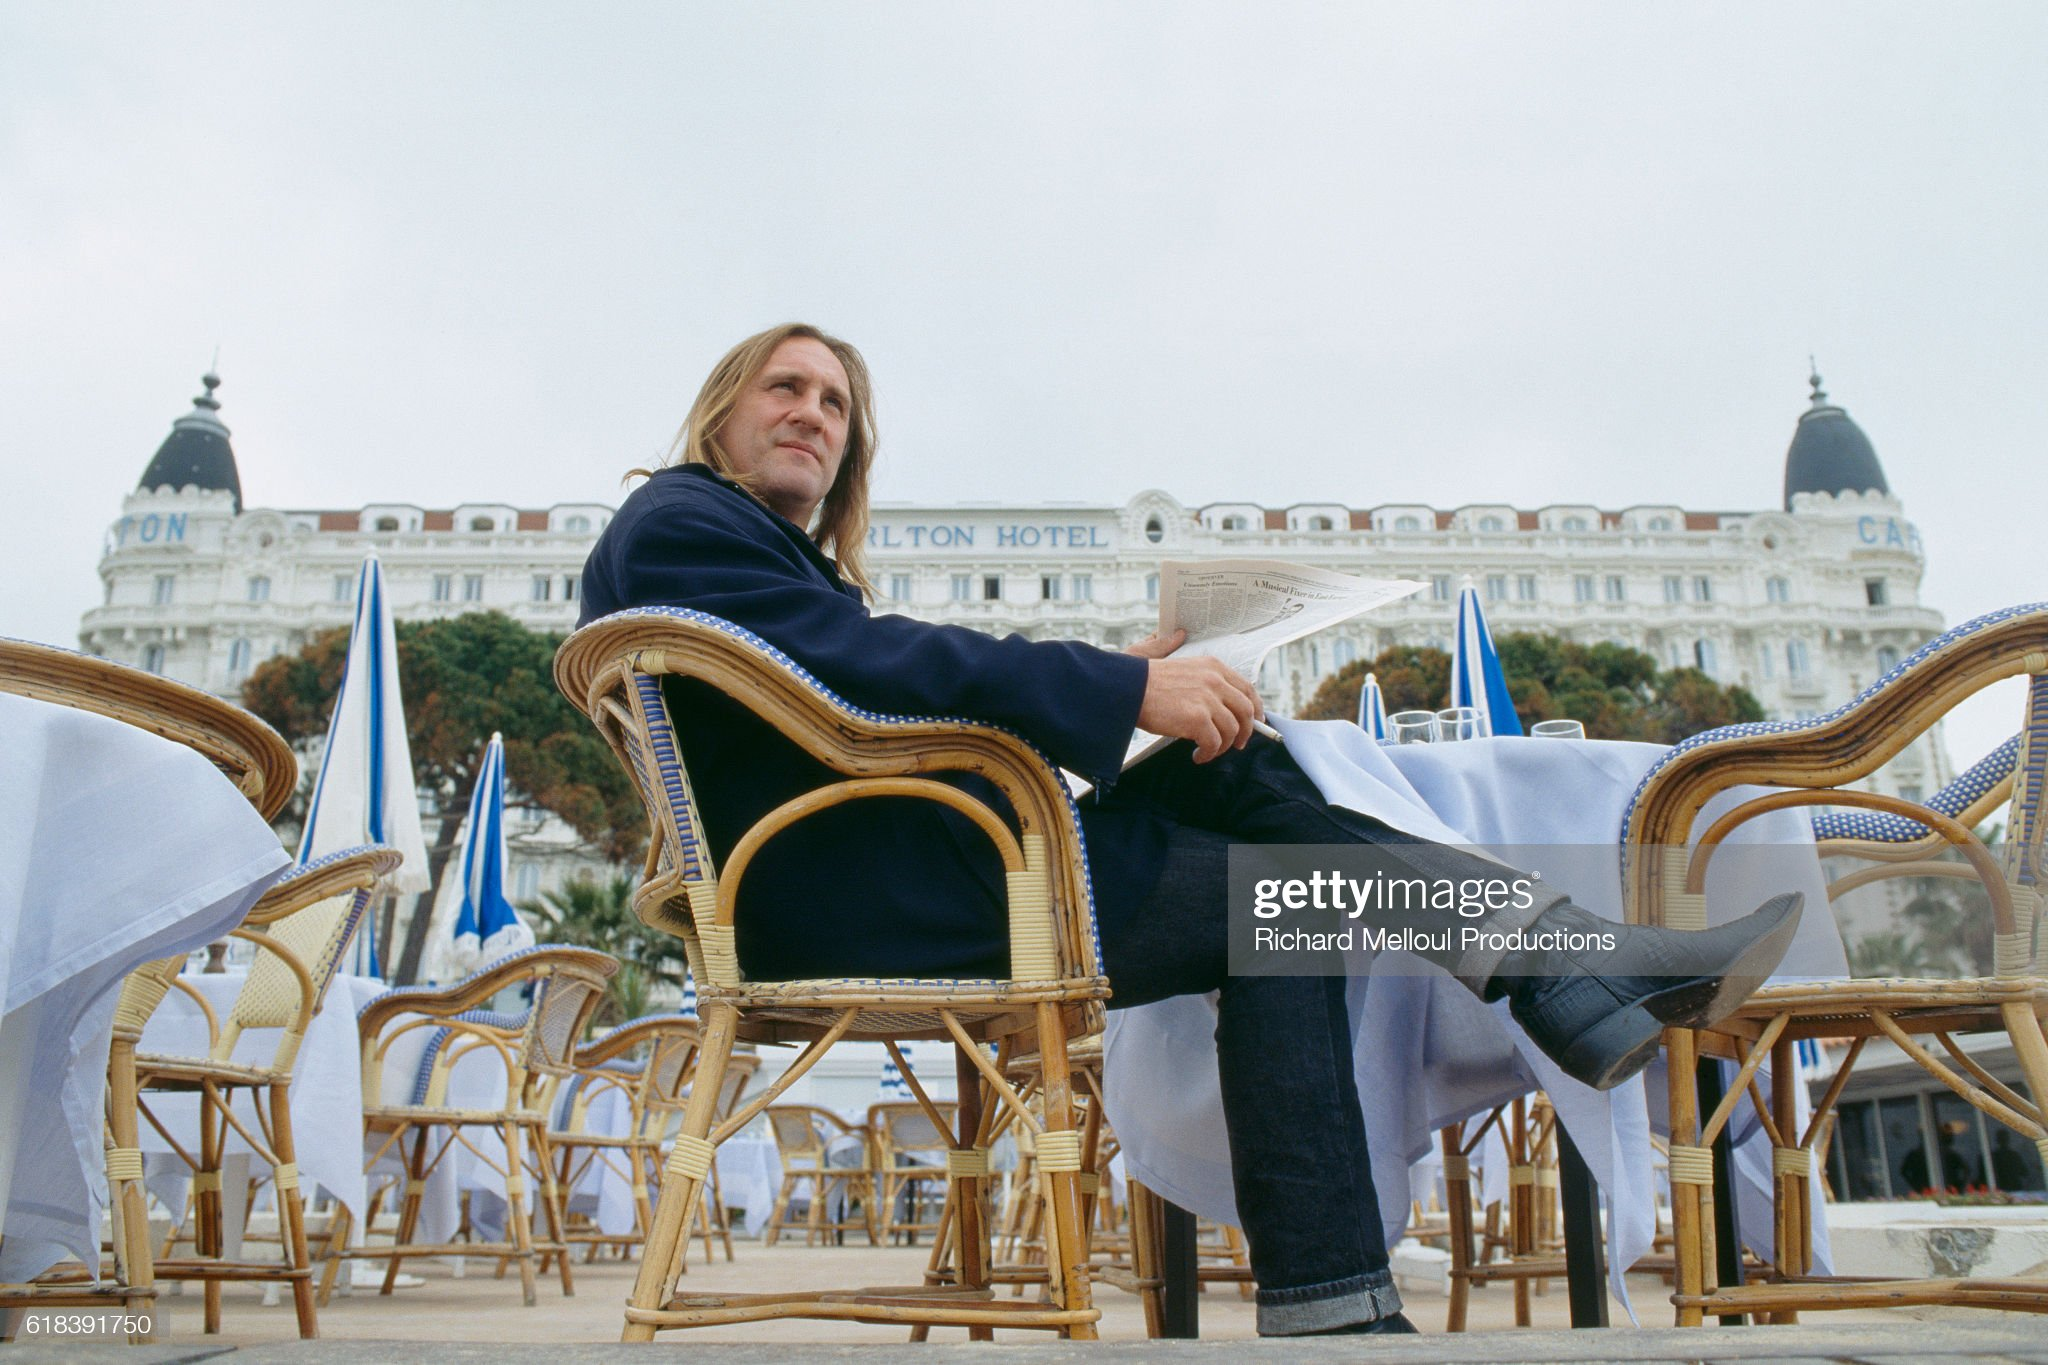 ¿Cuánto mide Gerard Depardieu? - Altura - Real height French-actor-gerard-depardieu-as-president-of-the-1992-cannes-film-picture-id618391750?s=2048x2048